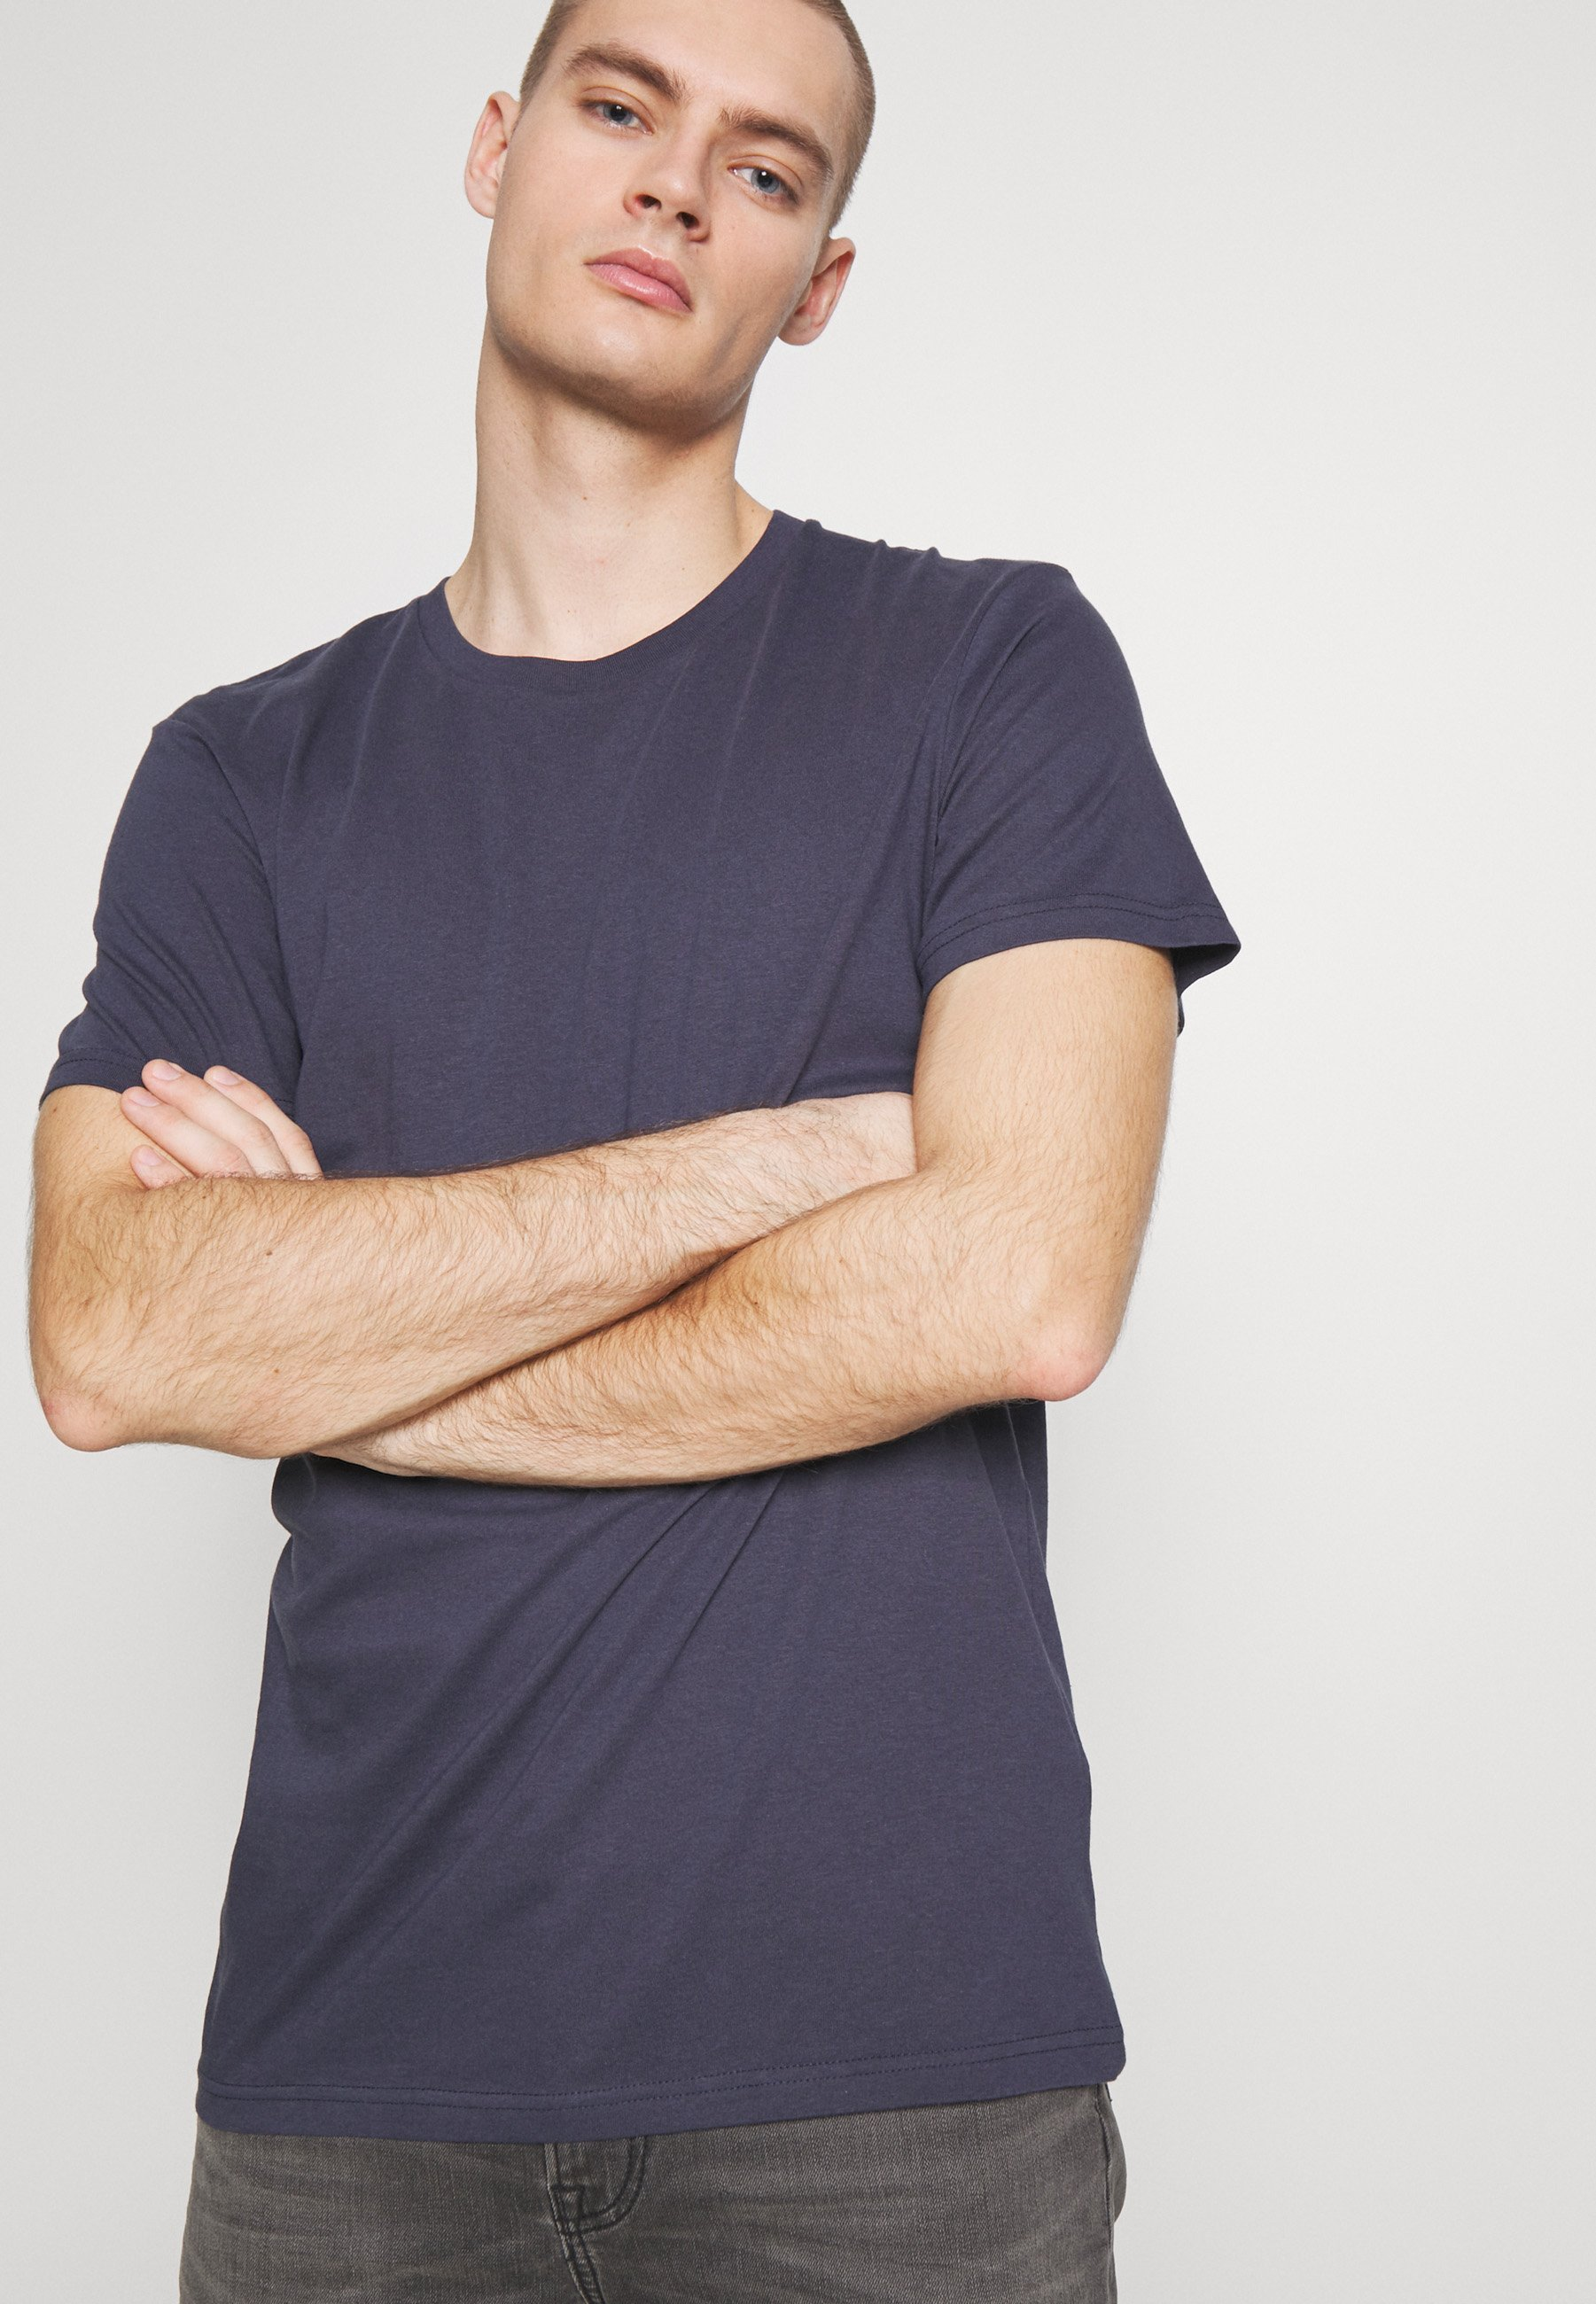 Cotton On ESSENTIAL TEE 3 PACK - Basic T-shirt - grey marle/ true navy/ charcoal marle N1uQ7